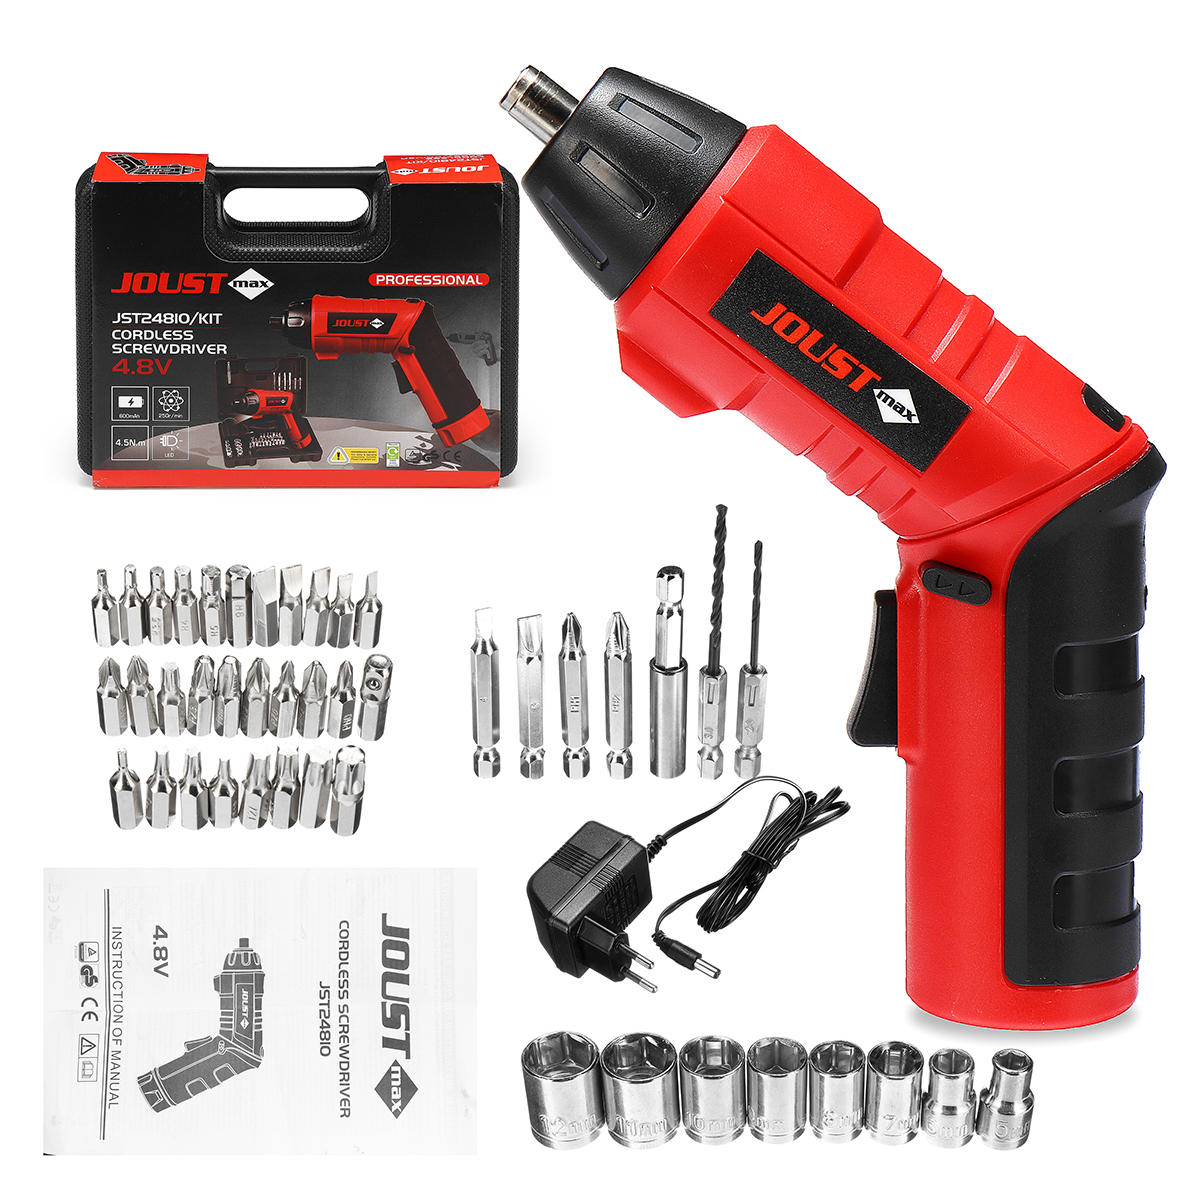 45 In 1 Kit 4.8V Cordless Electric Screwdriver Power Drills Tool Bit Set with Charger/Case